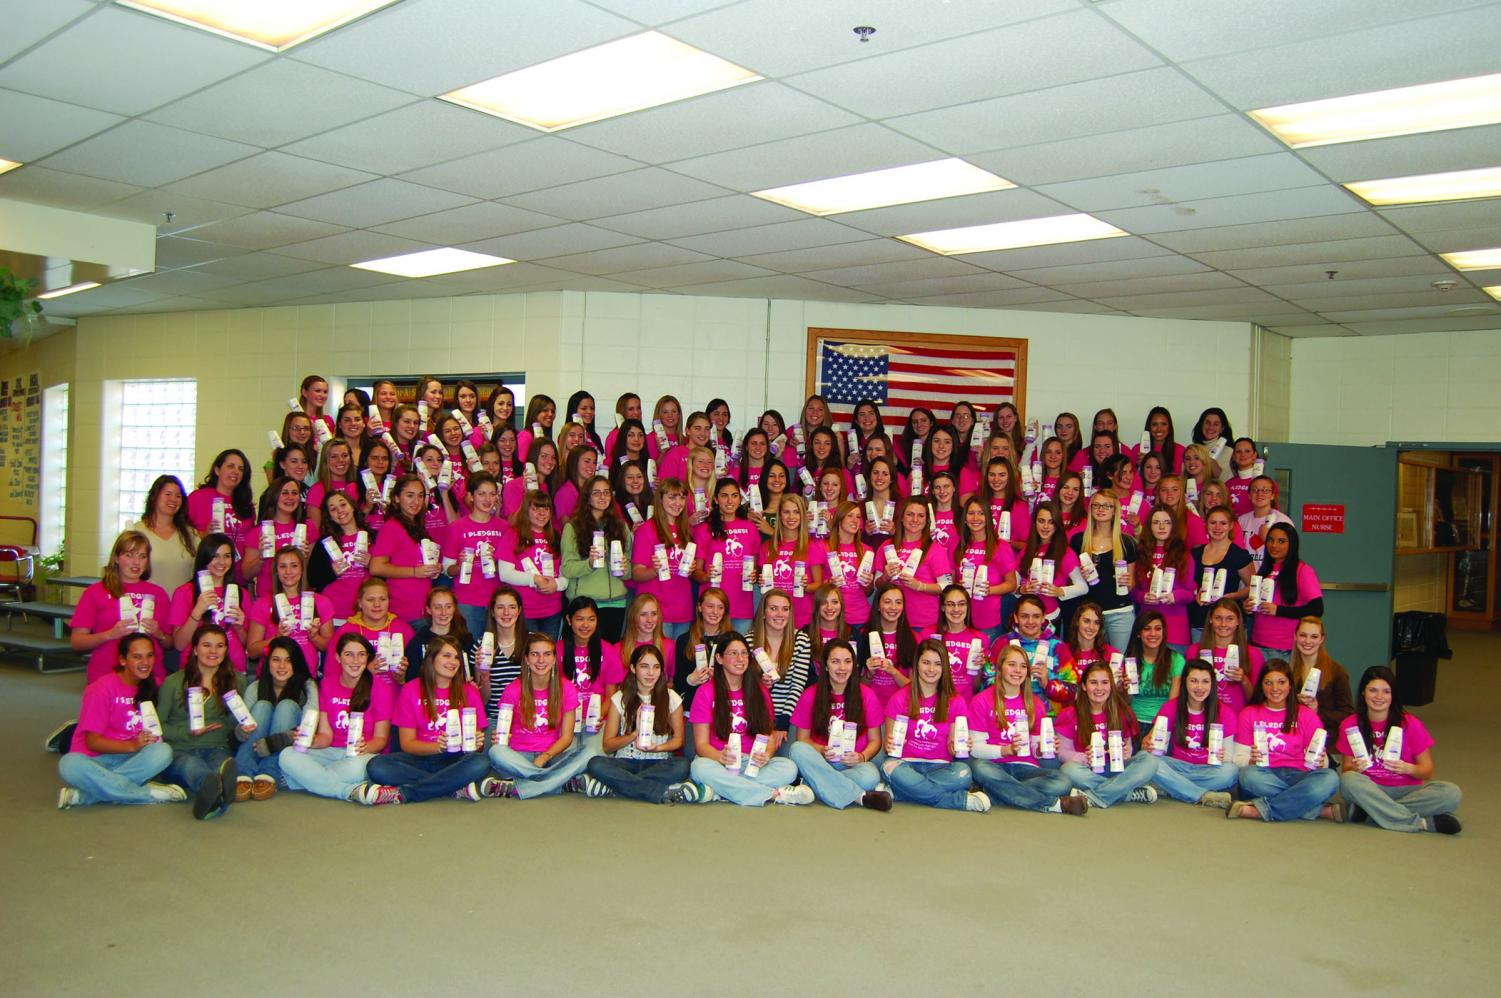 The Angels on the Day of Giving each year anxiously wait for the moment when they will donate their hair in front of the entire school.